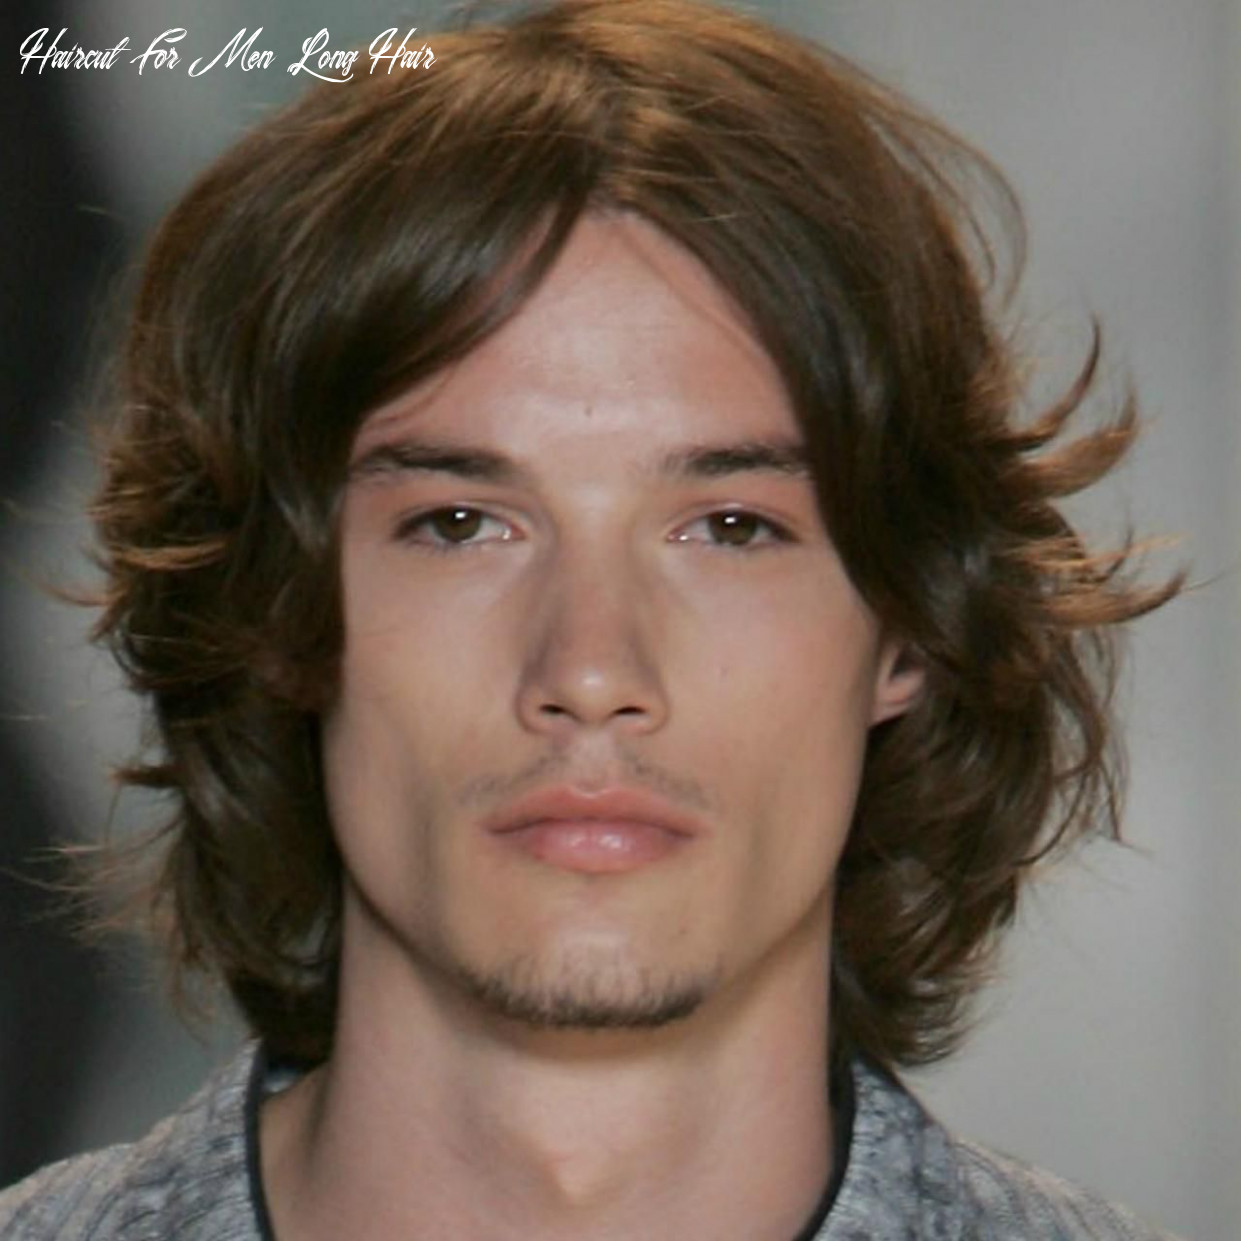 Long hairstyles for men picture gallery haircut for men long hair